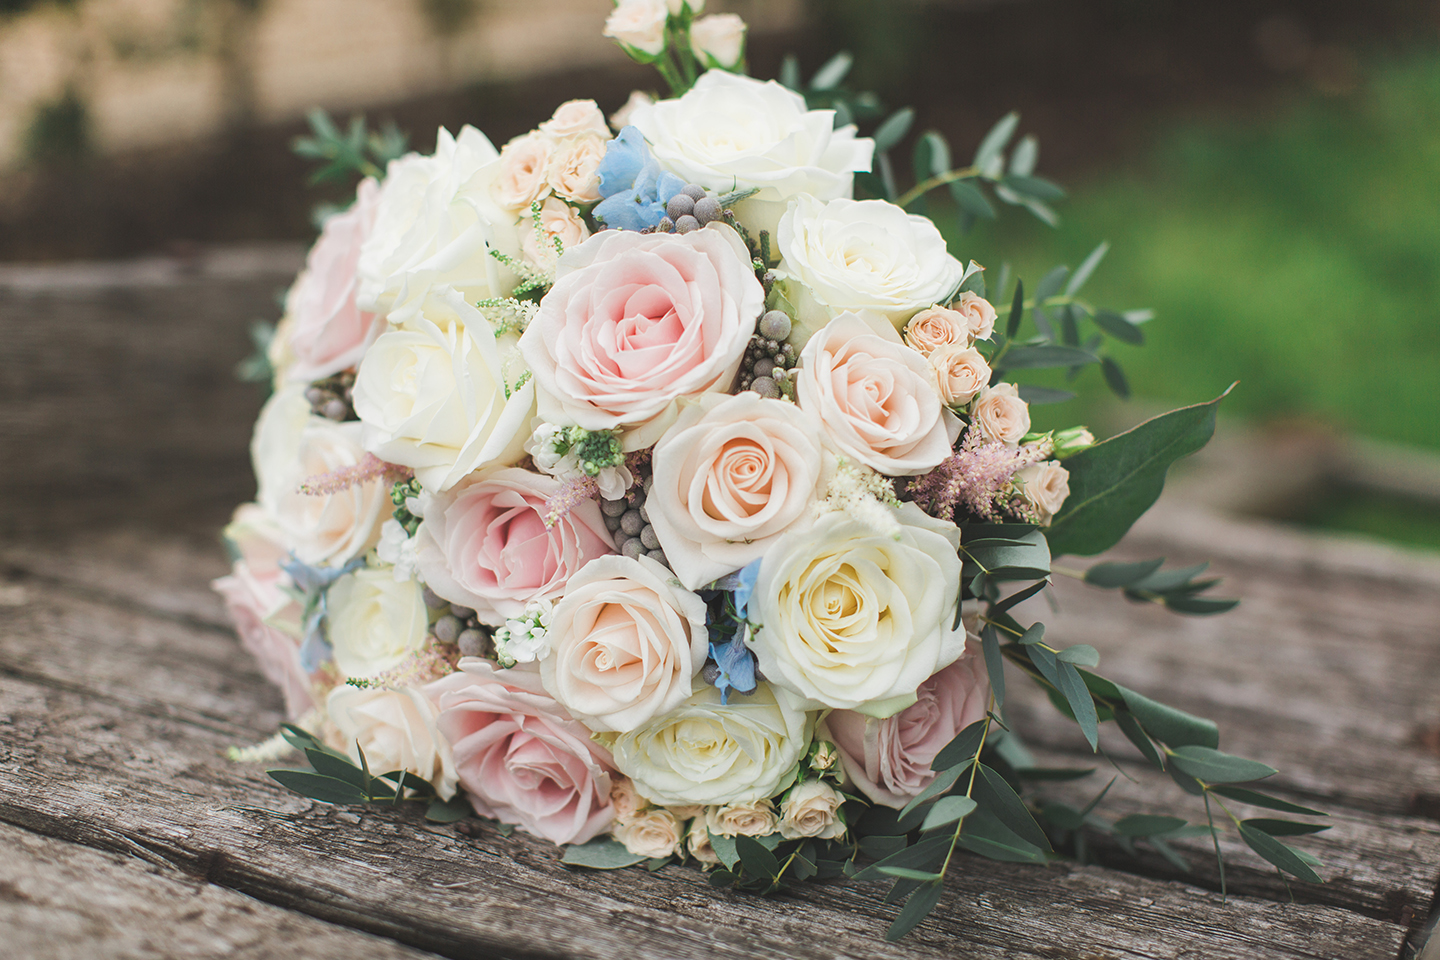 A spring wedding bouquet is made up of pastel florals for a wedding ceremony at Bassmead Manor Barns